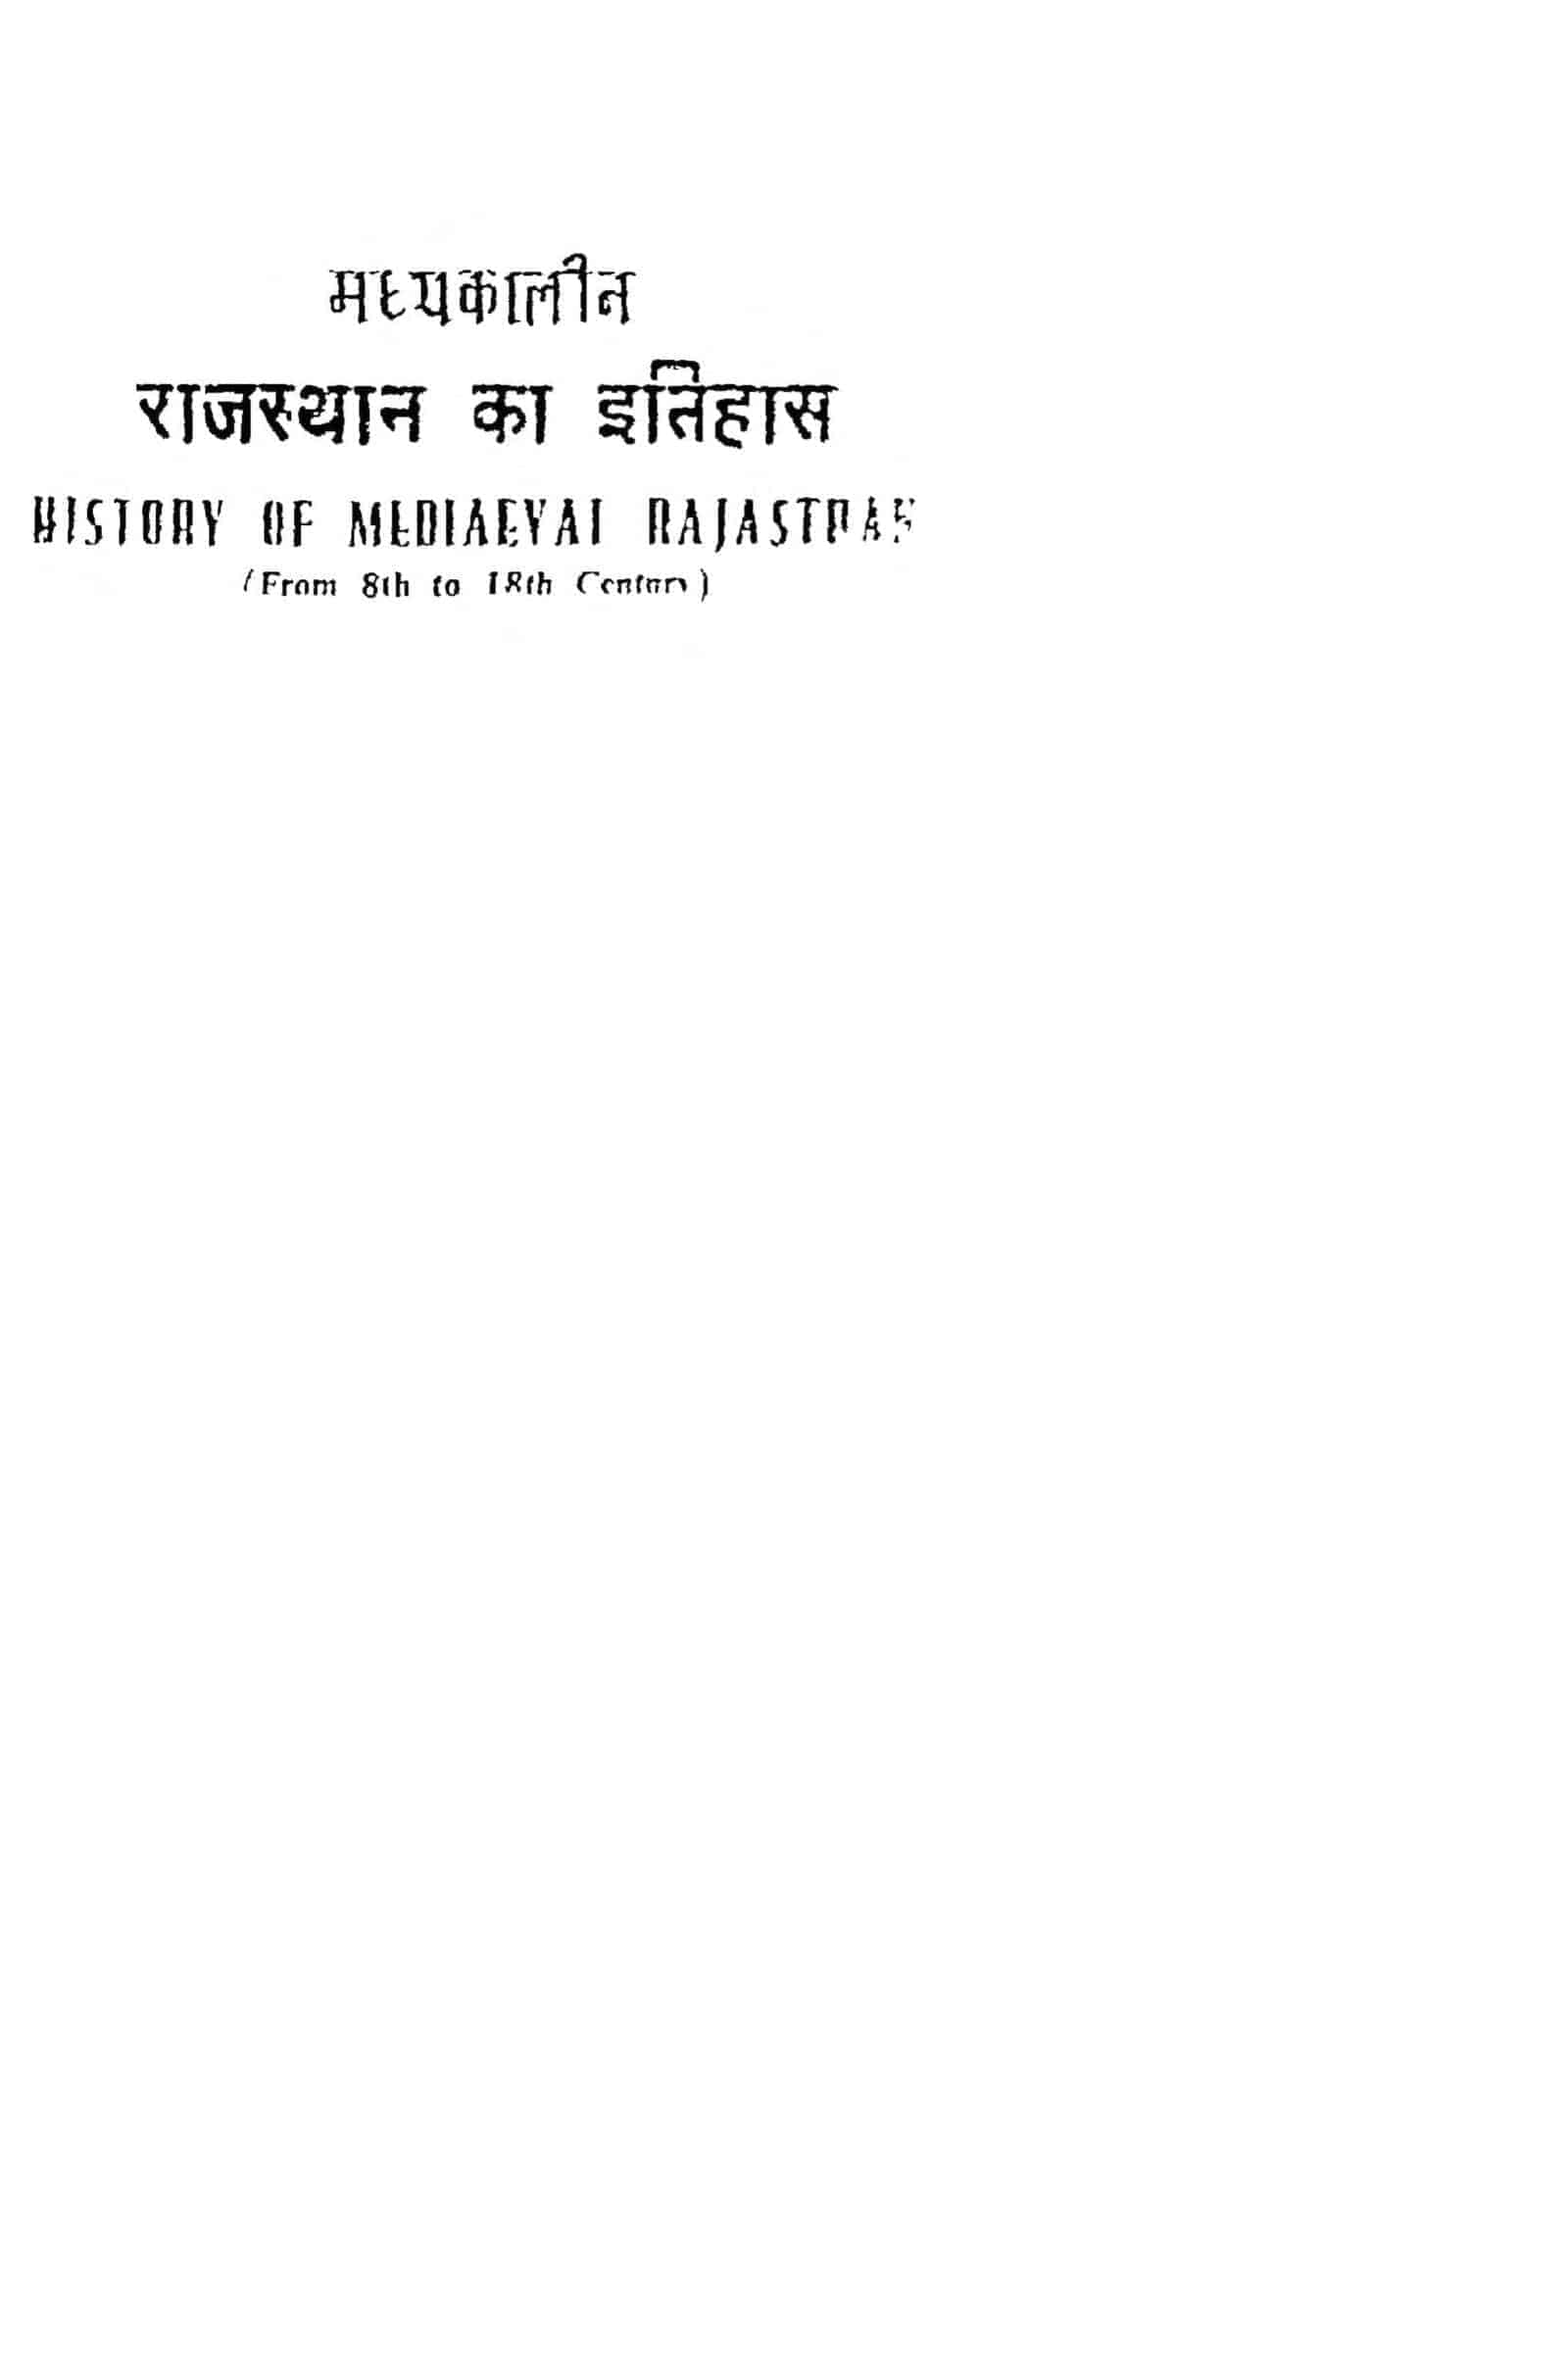 History Of Mediaeval Rajasthan by डॉ भार्गव - Dr. Bhargava